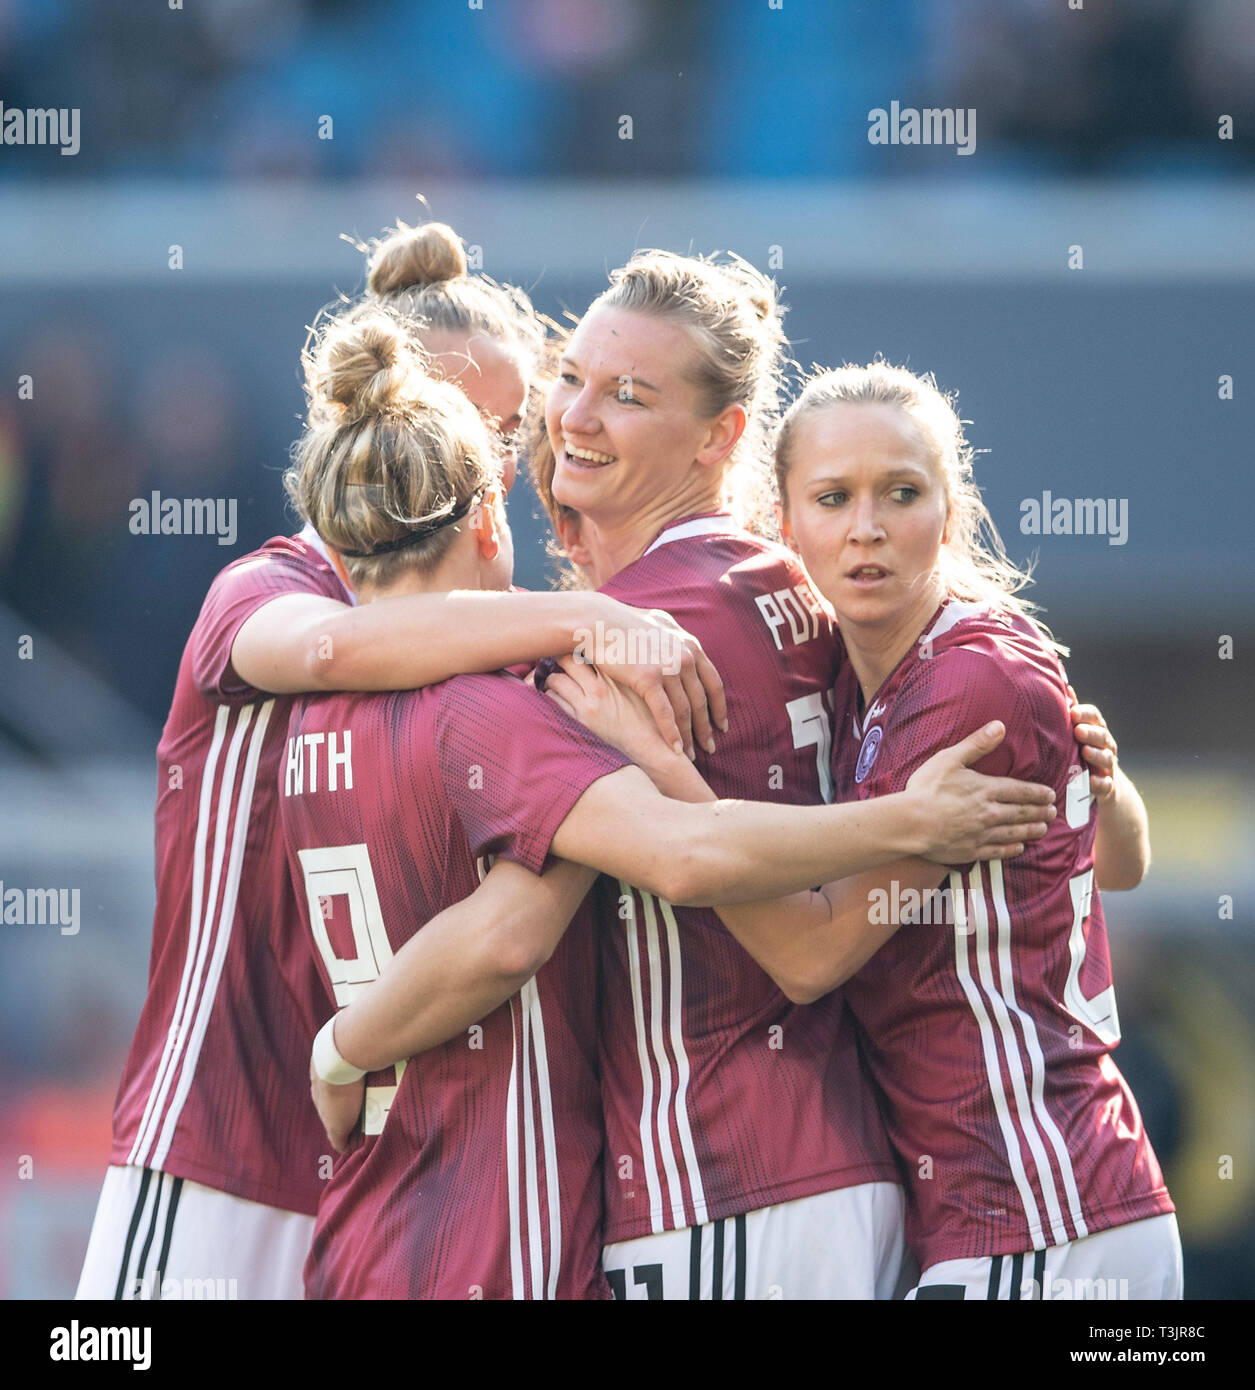 Paderborn, Germany. 09th Apr, 2019. jubilation GER for goalkeeper Alexandra POPP (GER / withte) after the goal to 1: 1, r. Turid KNAAK (GER) Soccer National Team Women Friendlies, Germany (GER) - Japan (JPN), on 09/04/2019 in Paderborn / Germany. | Usage worldwide Credit: dpa picture alliance/Alamy Live News - Stock Image